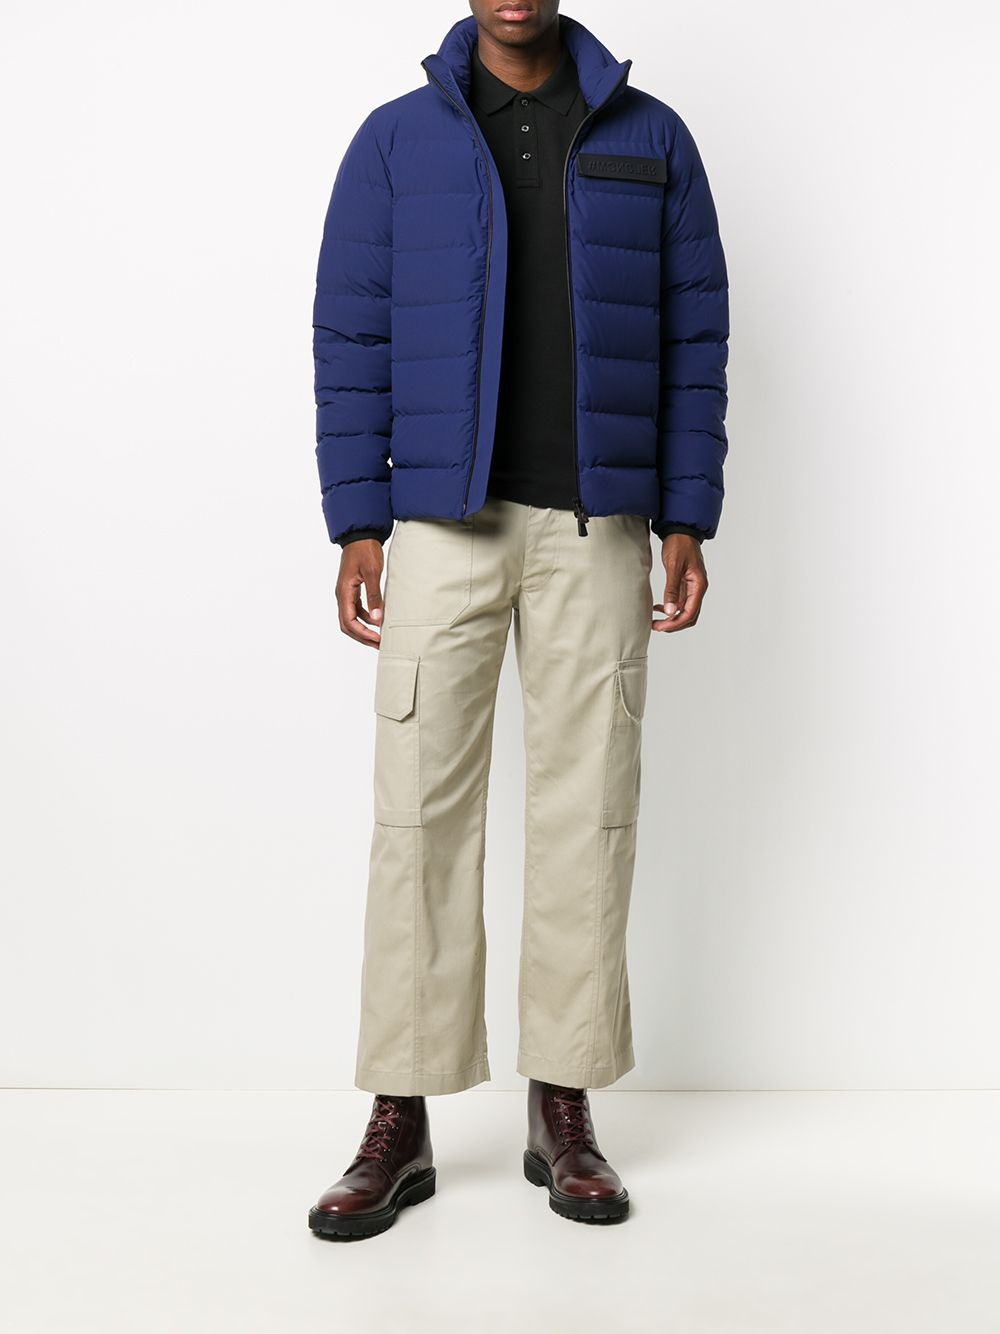 blue feather down quilted Kander jacket MONCLER GRENOBLE |  | KANDER 1A510-40-5399D614